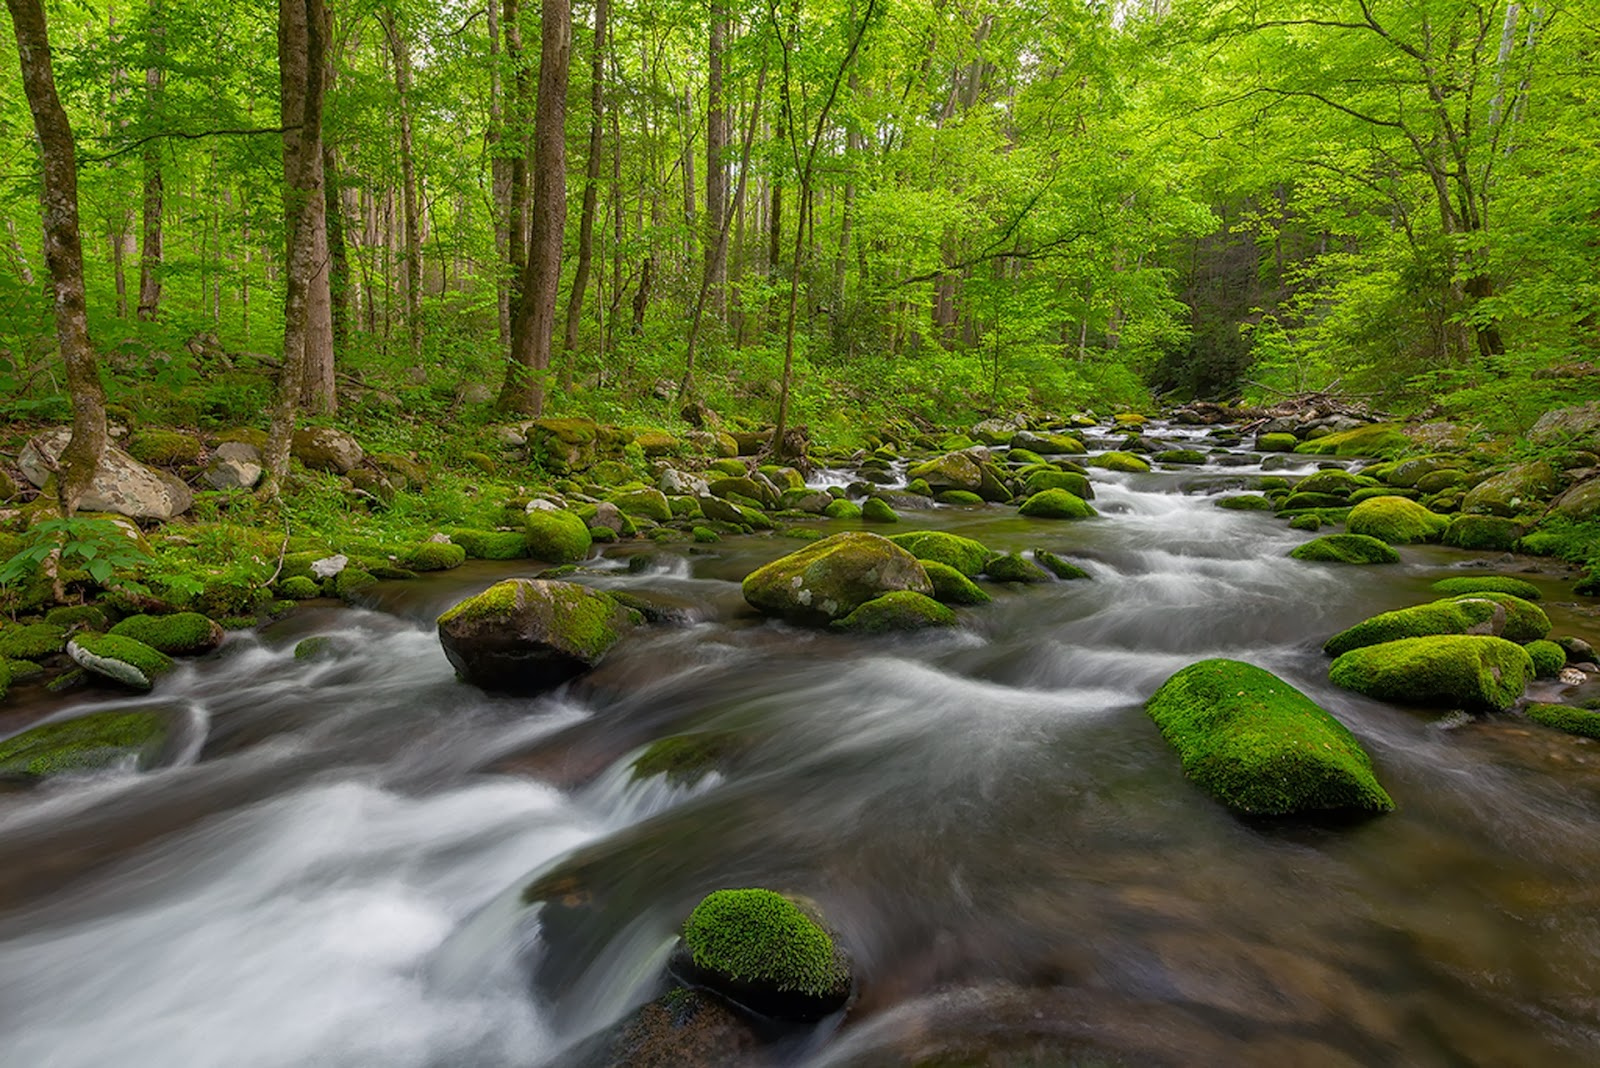 Widescreen Full Hd Green Nature Waterfall Images For - Hd Natural Wallpapers For Laptop - HD Wallpaper